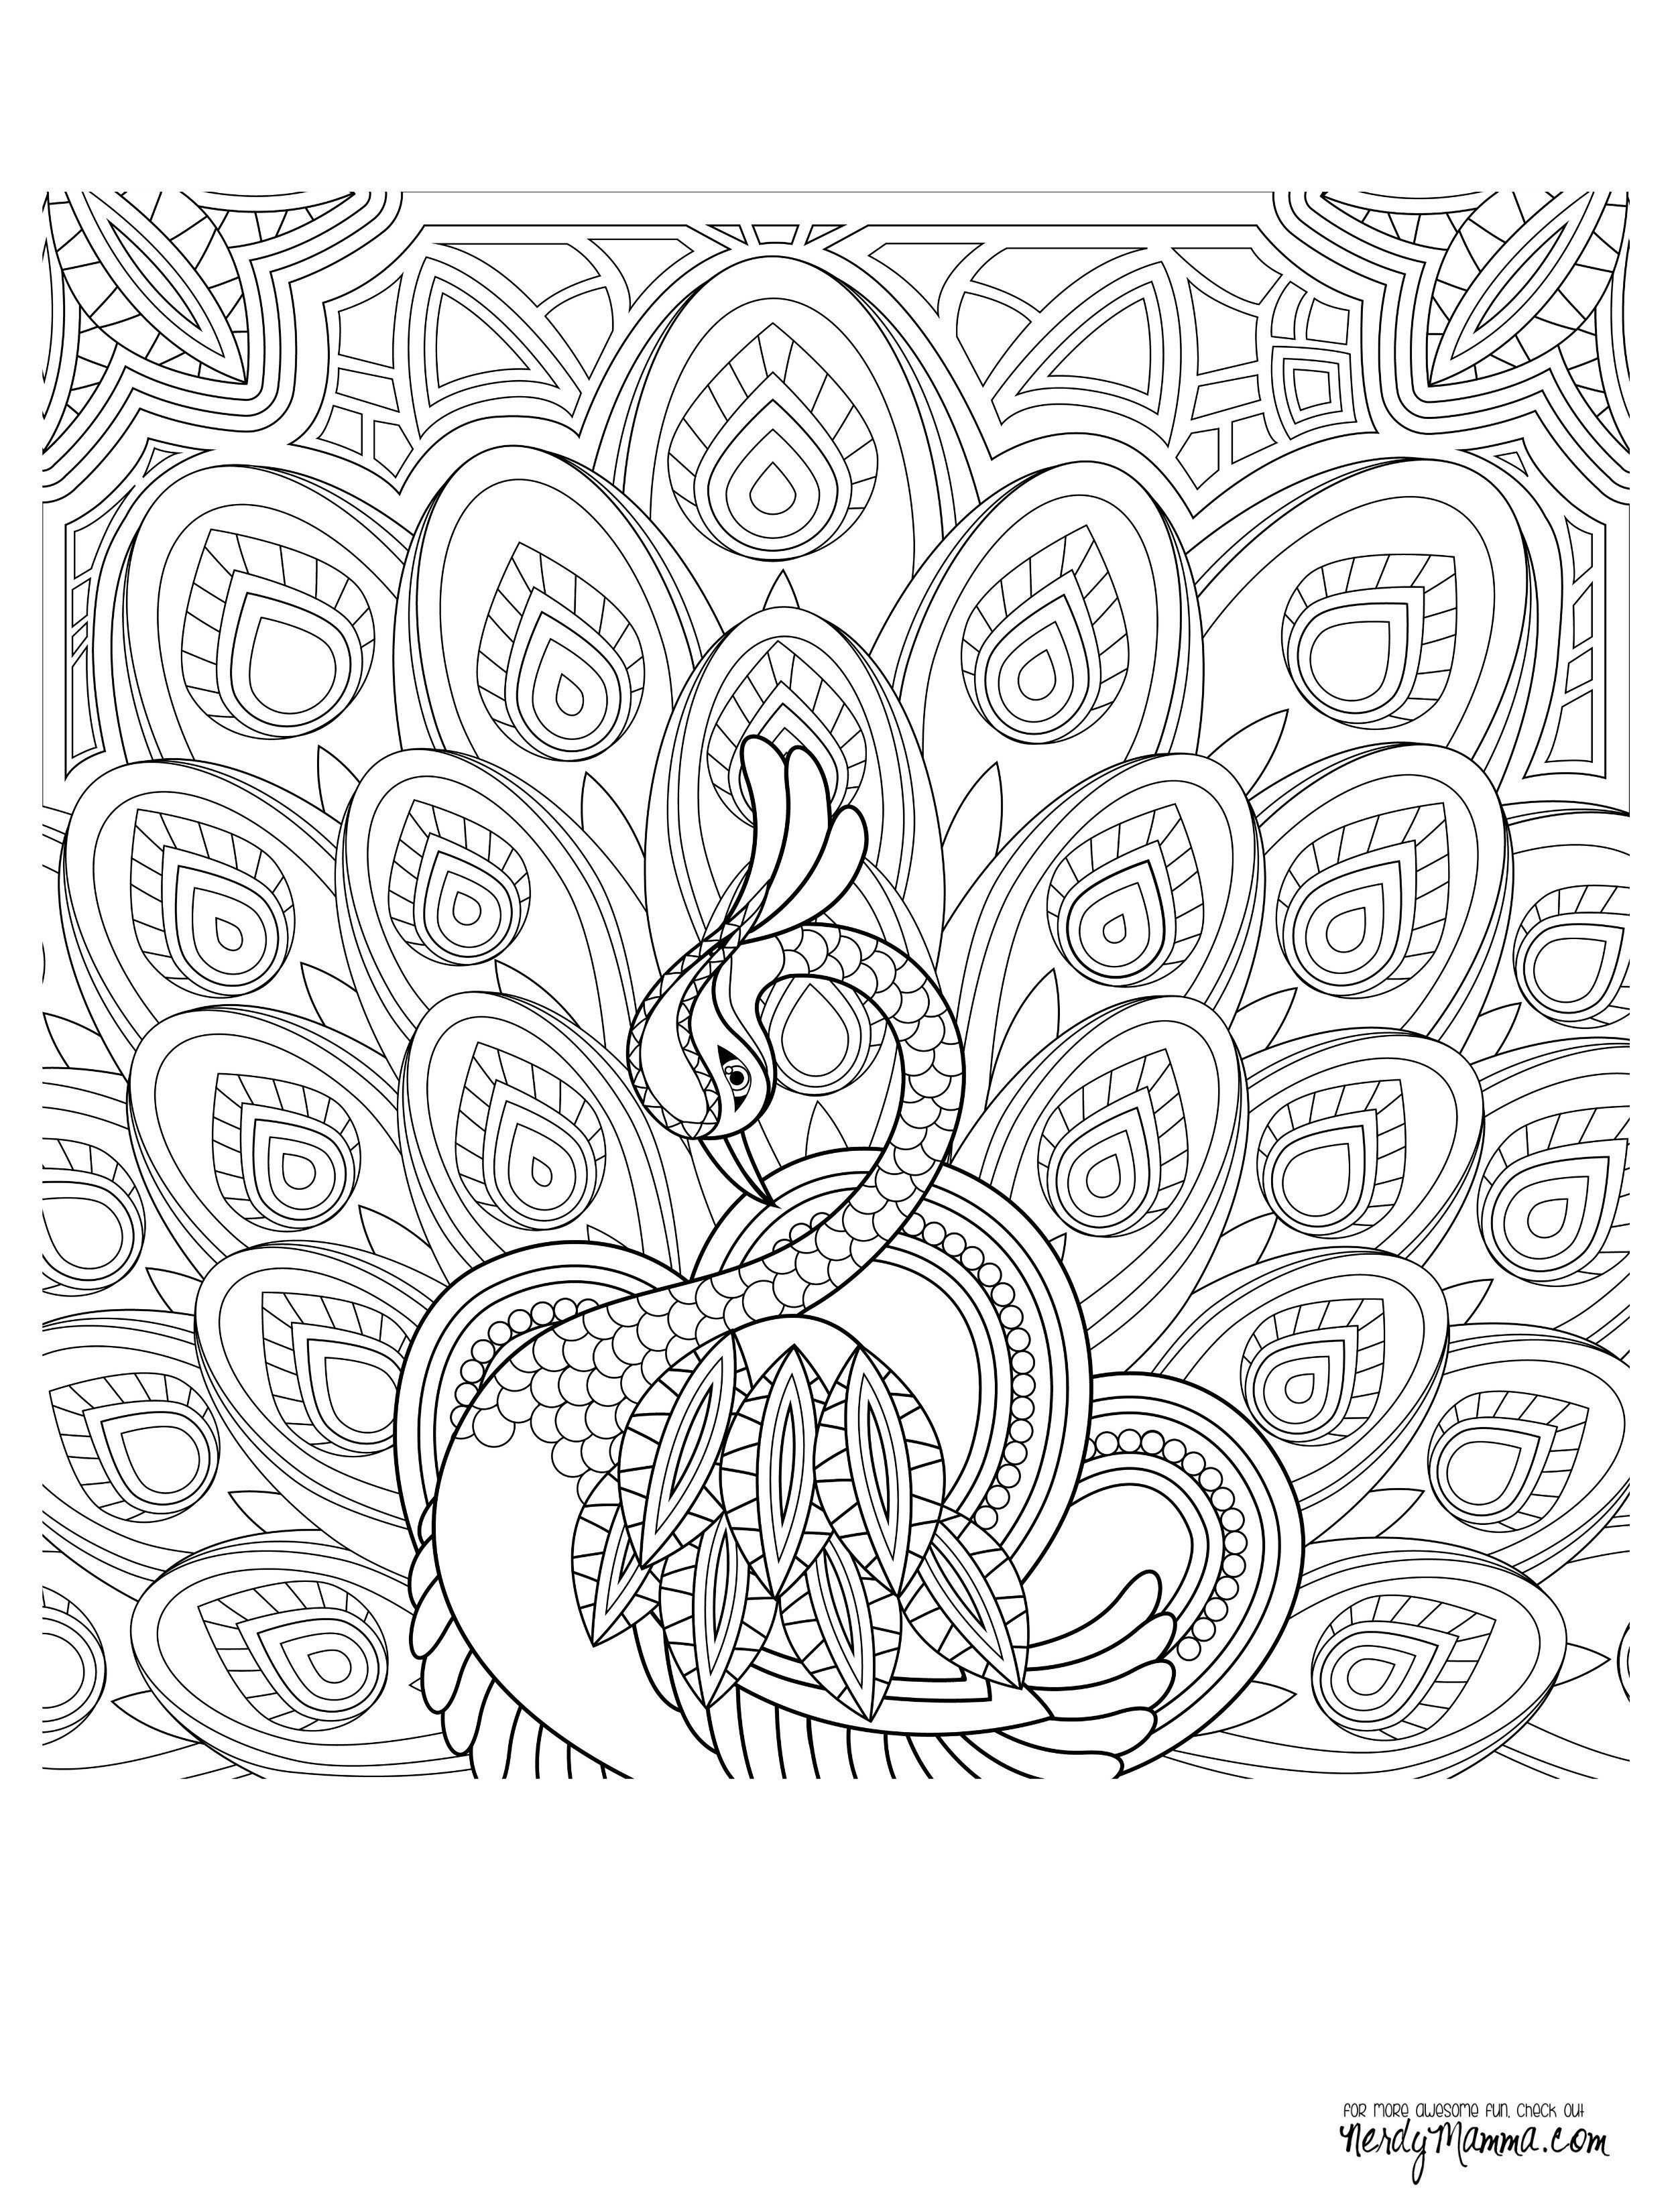 Peacock Adult Coloring Page More Printable Adult Coloring Pages Mandala Coloring Pages Adult Coloring Pages